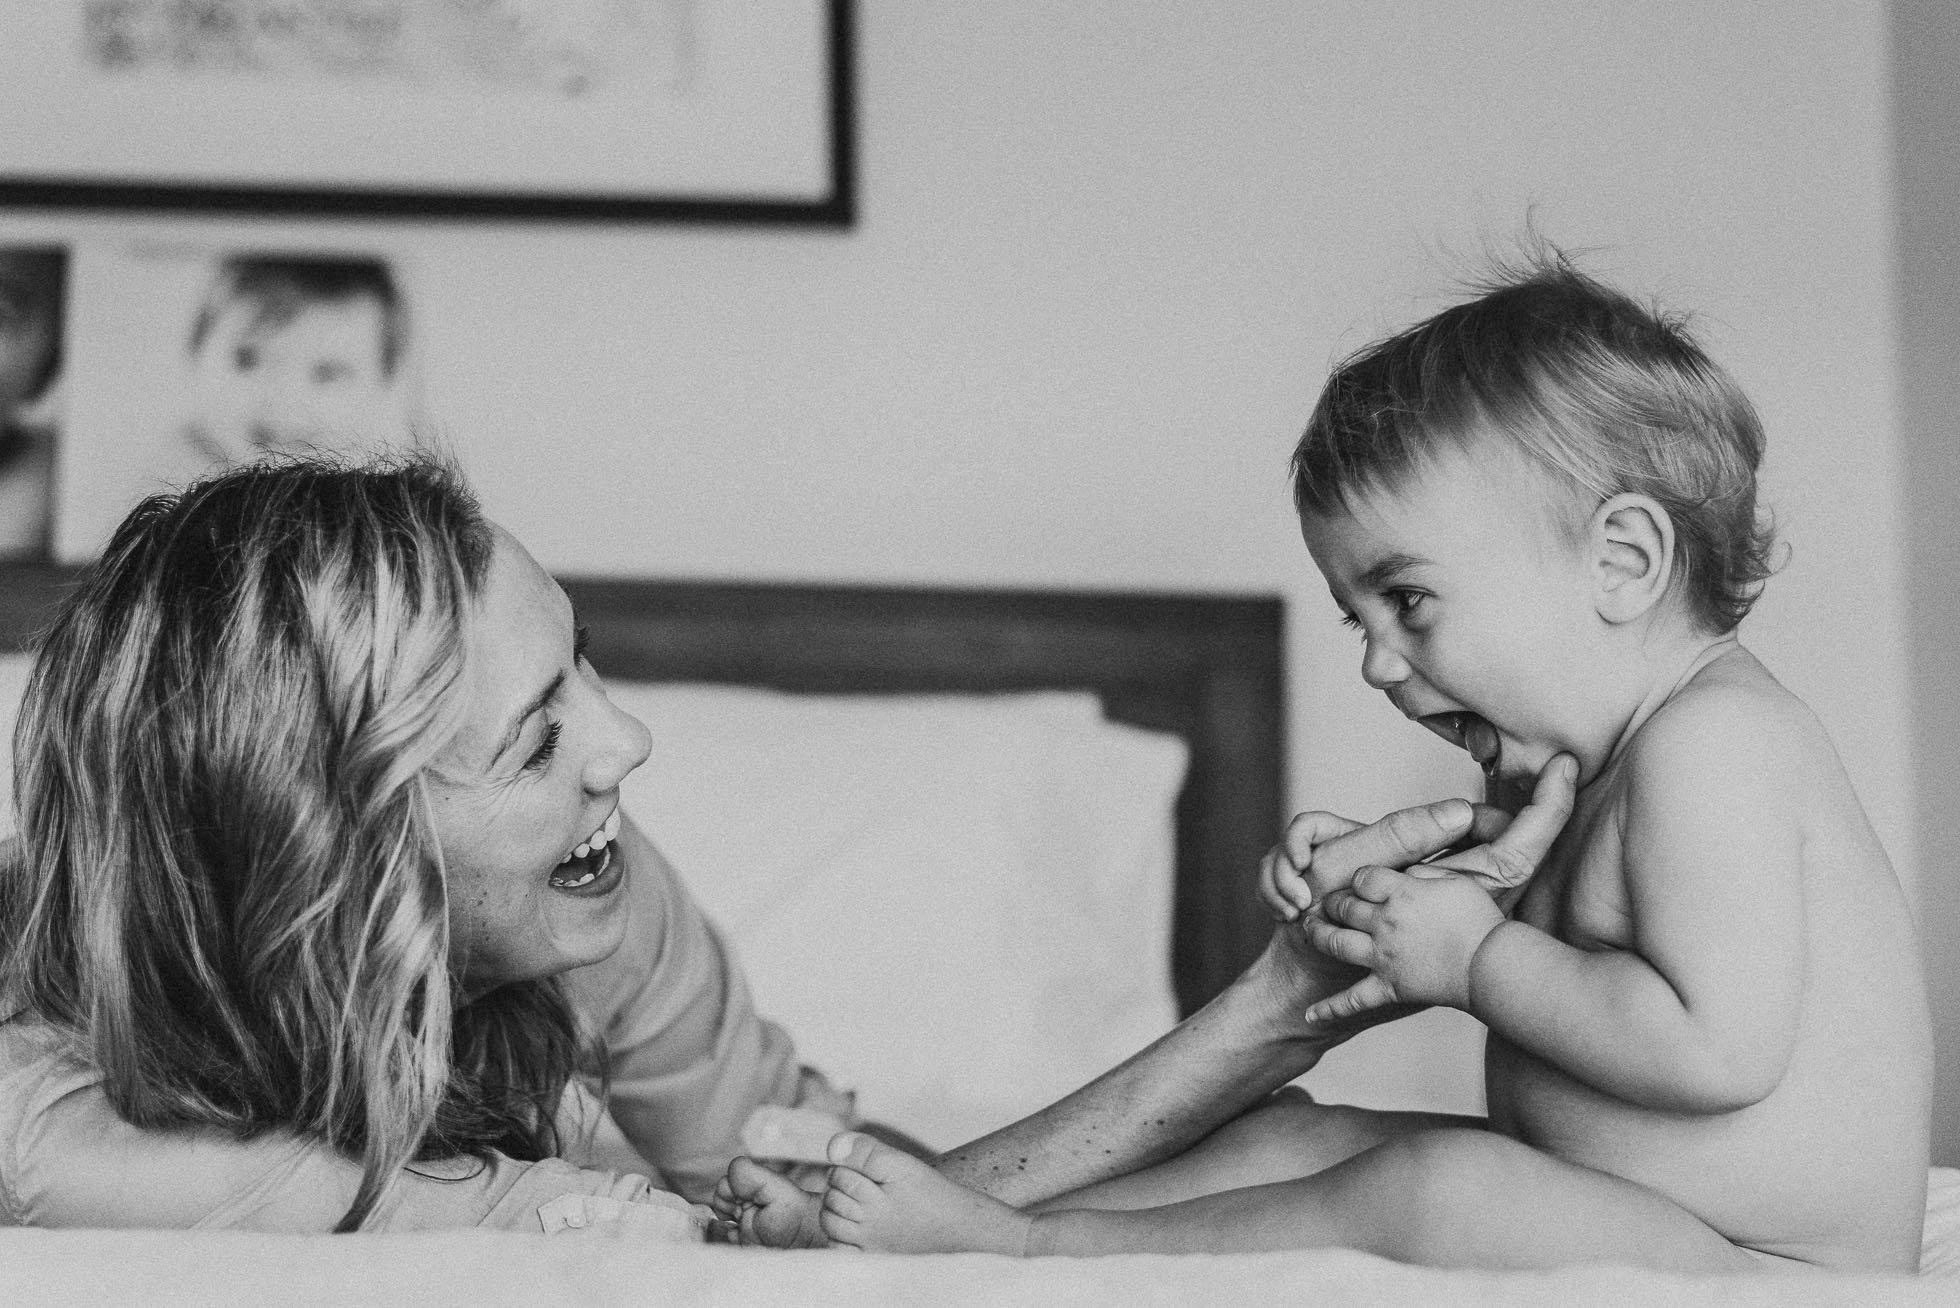 mum-and-toddler-playing-and-smiling-together-on-bed-at-home-melbourne-baby-photographer.jpg